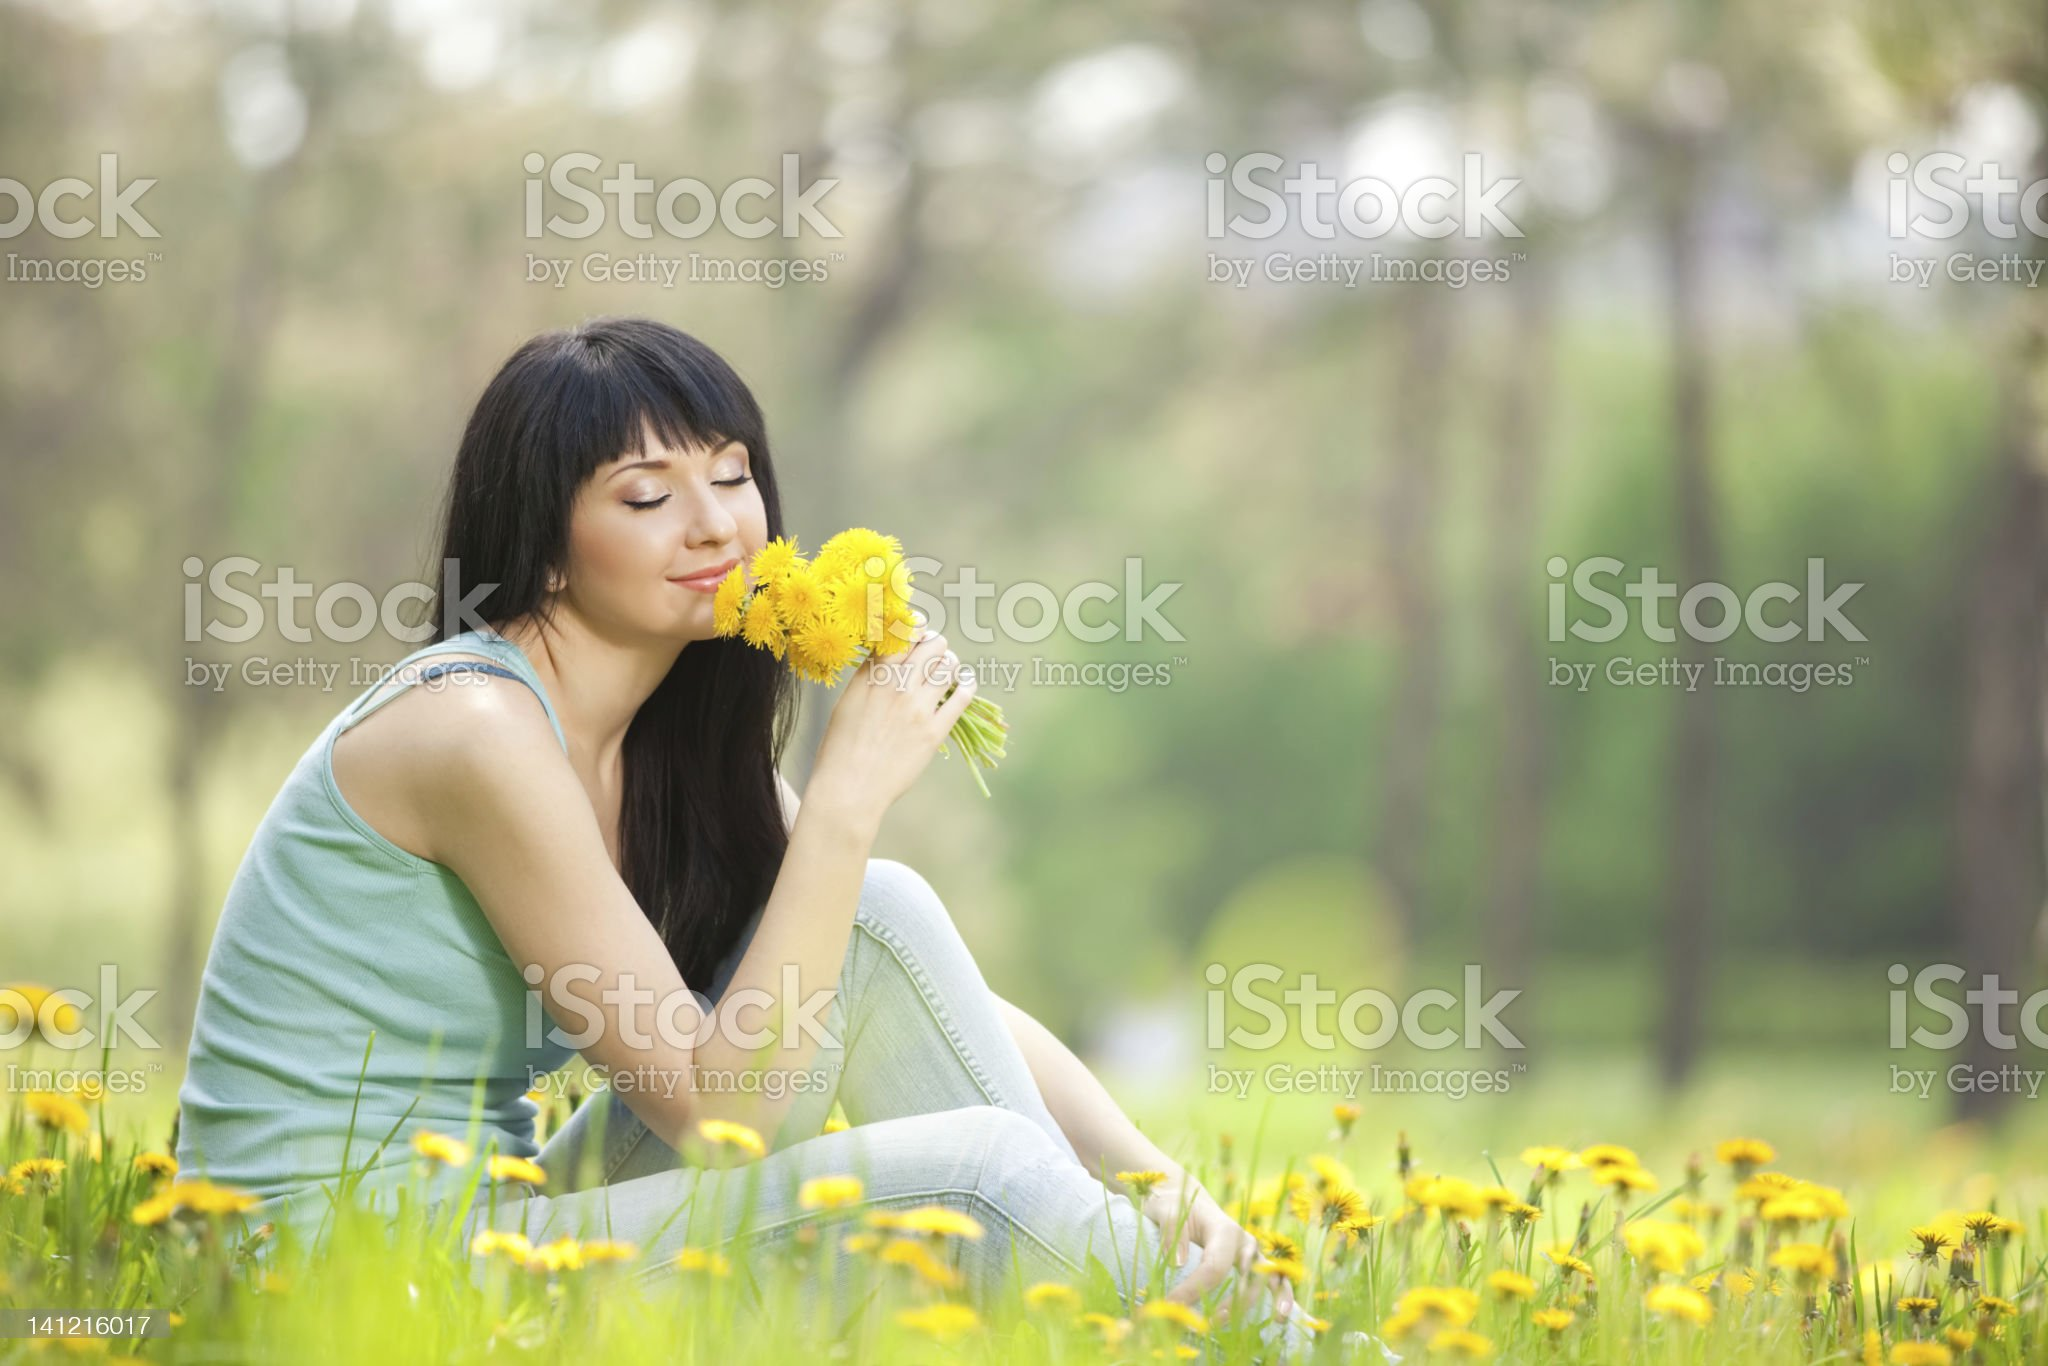 Cute woman in the park with dandelions royalty-free stock photo